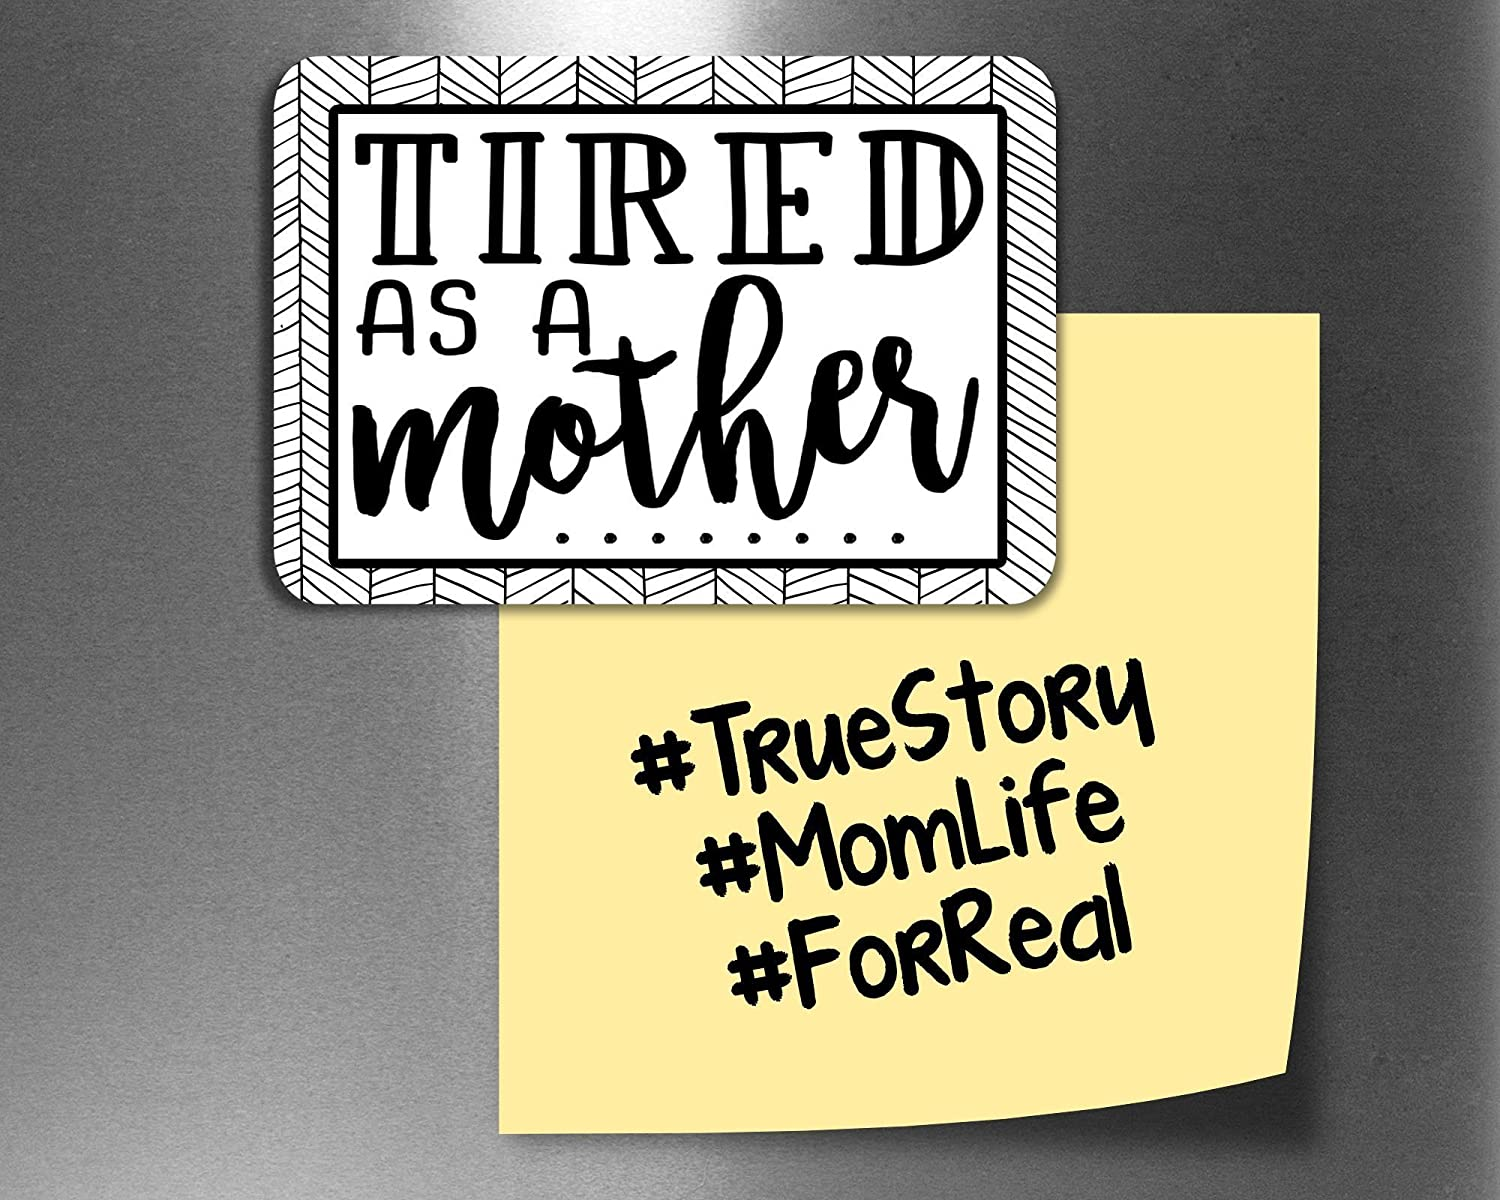 Tired as a Mother Funny Fridge Magnets, Refrigerator Magnets with Quotes, Funny Kitchen Decor Noticeboard Office Supplies, Best Housewarming Home Decorations Gift